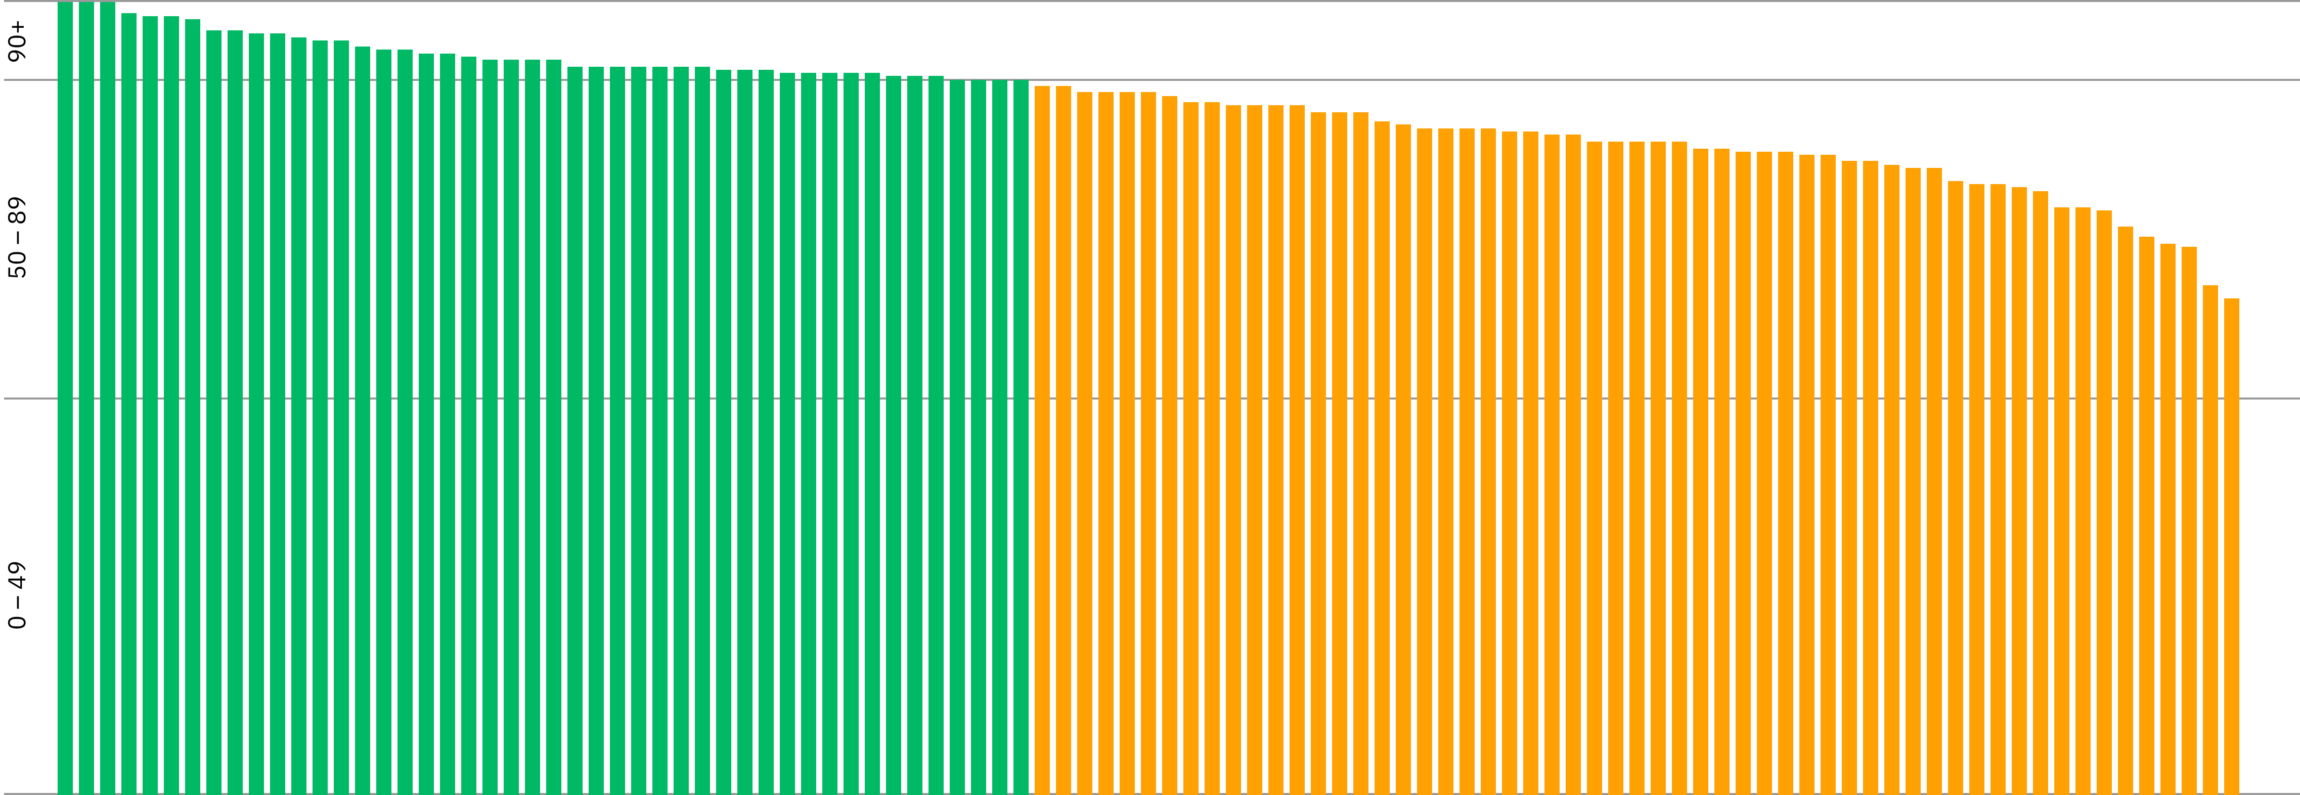 Bar chart showing the AJ100 websites SEO scores. Nearly half the chart is green (good) and the other half is orange (OK)